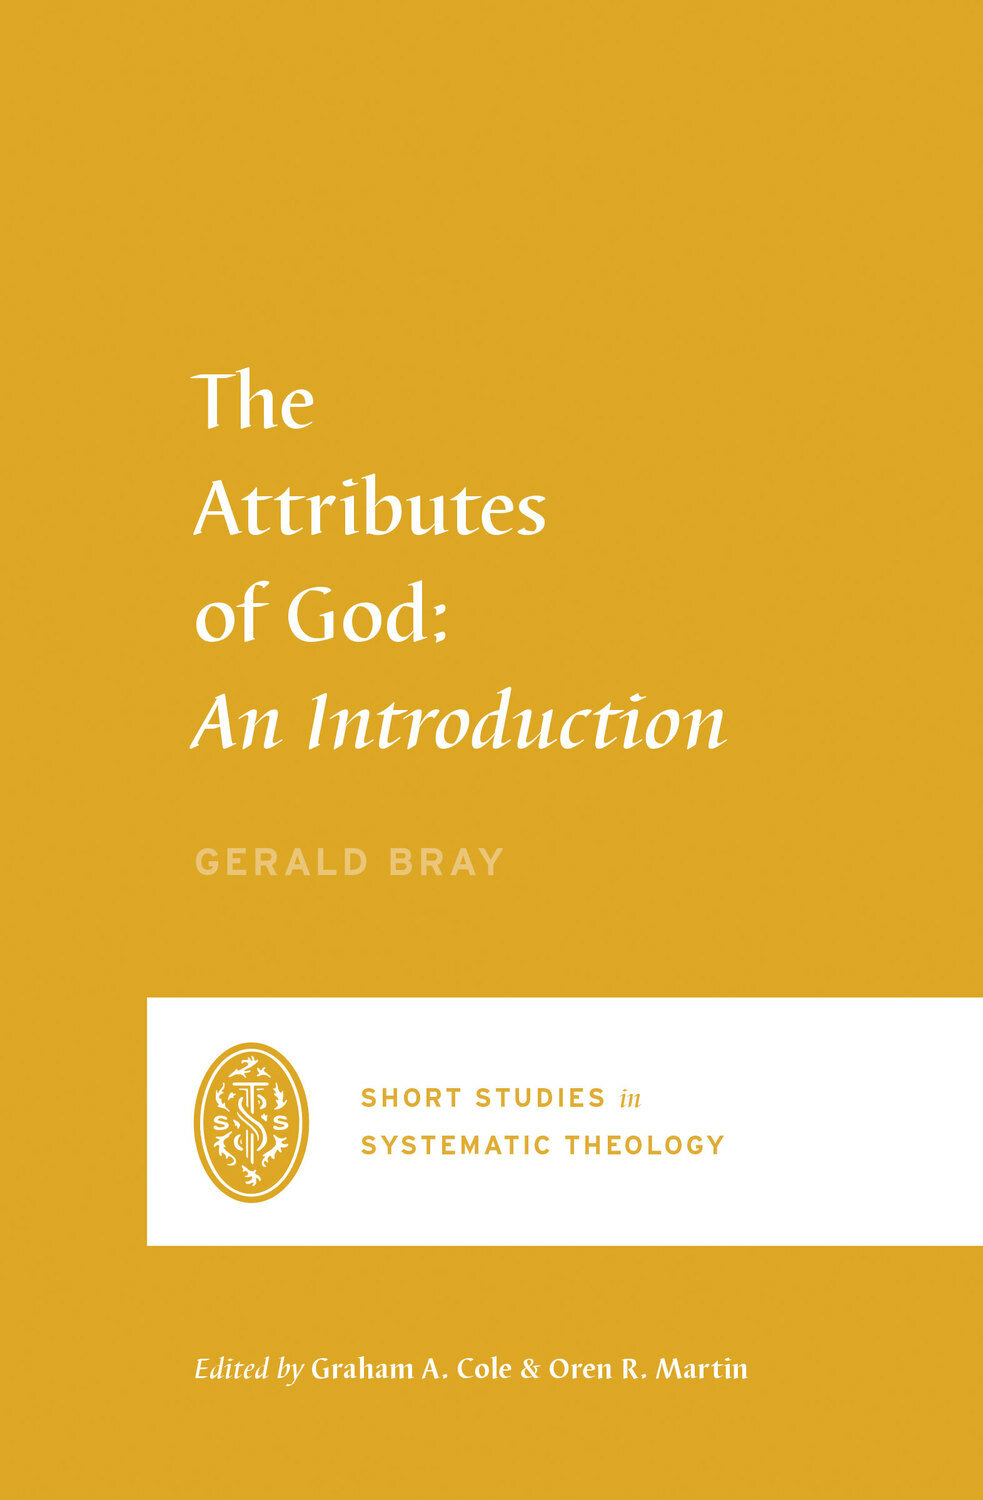 The Attributes of God: An Introduction (Short Studies in Systematic Theology)